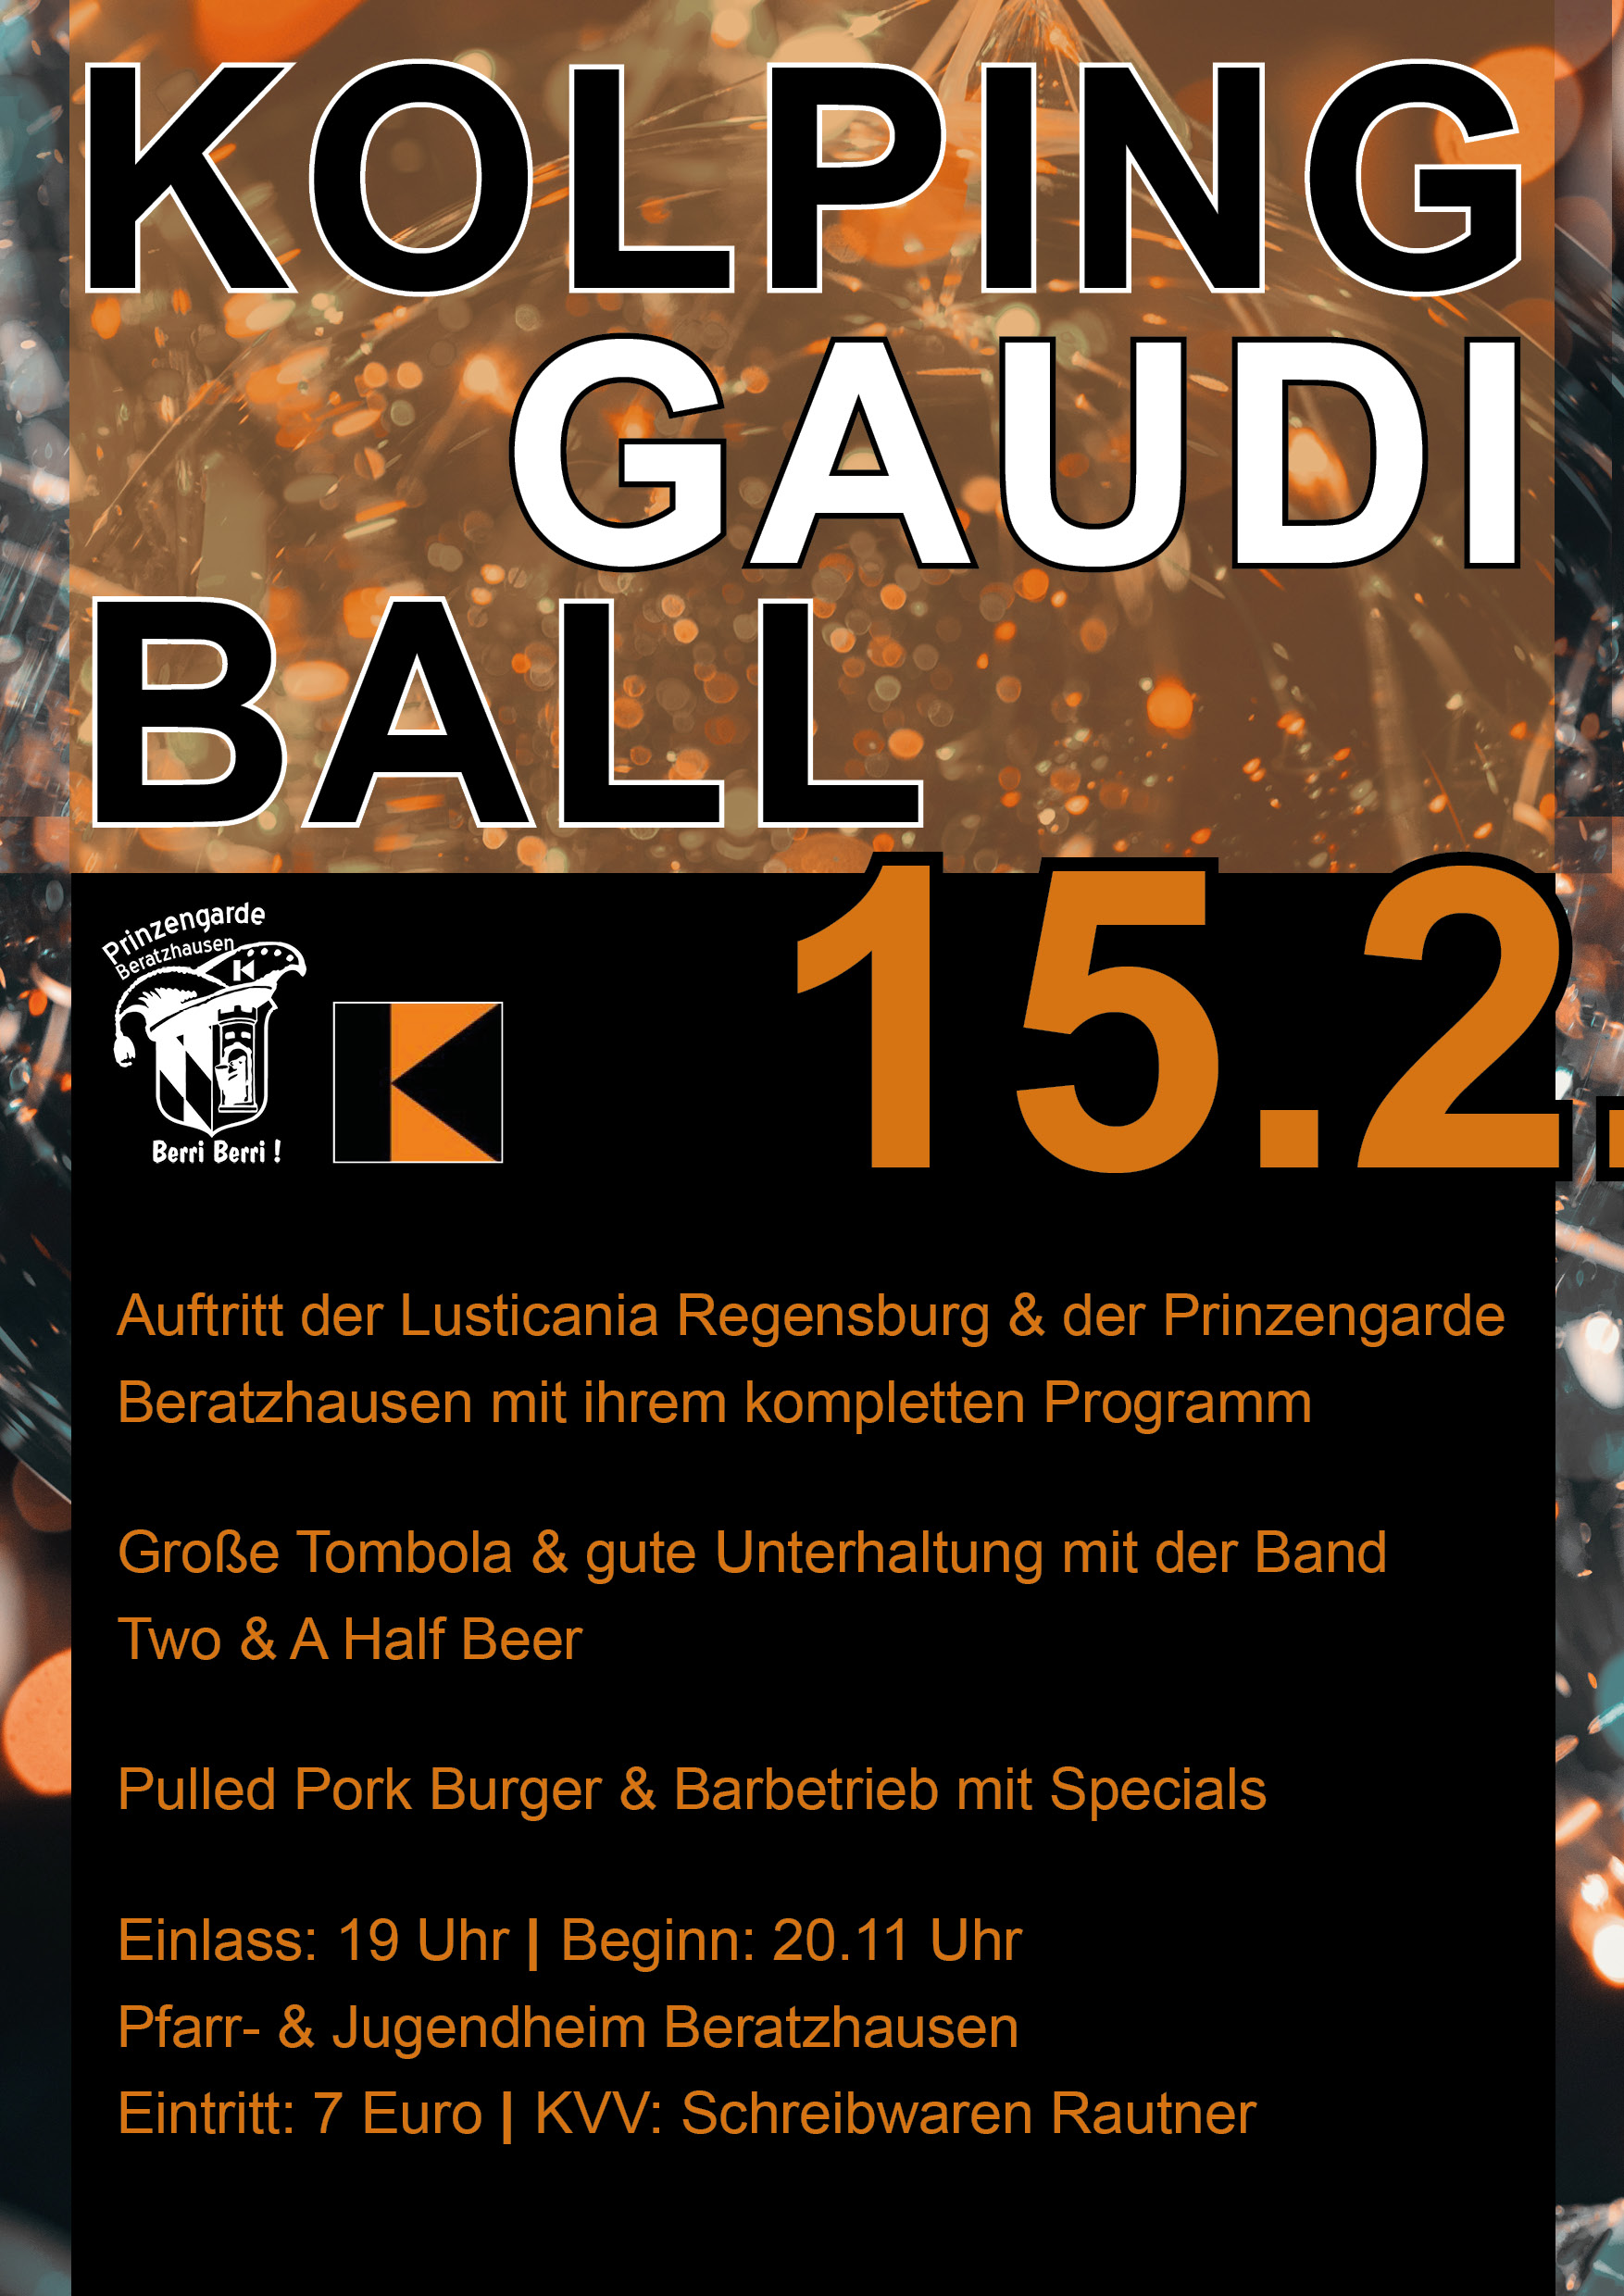 kolpinggaudiball 15 02 2020